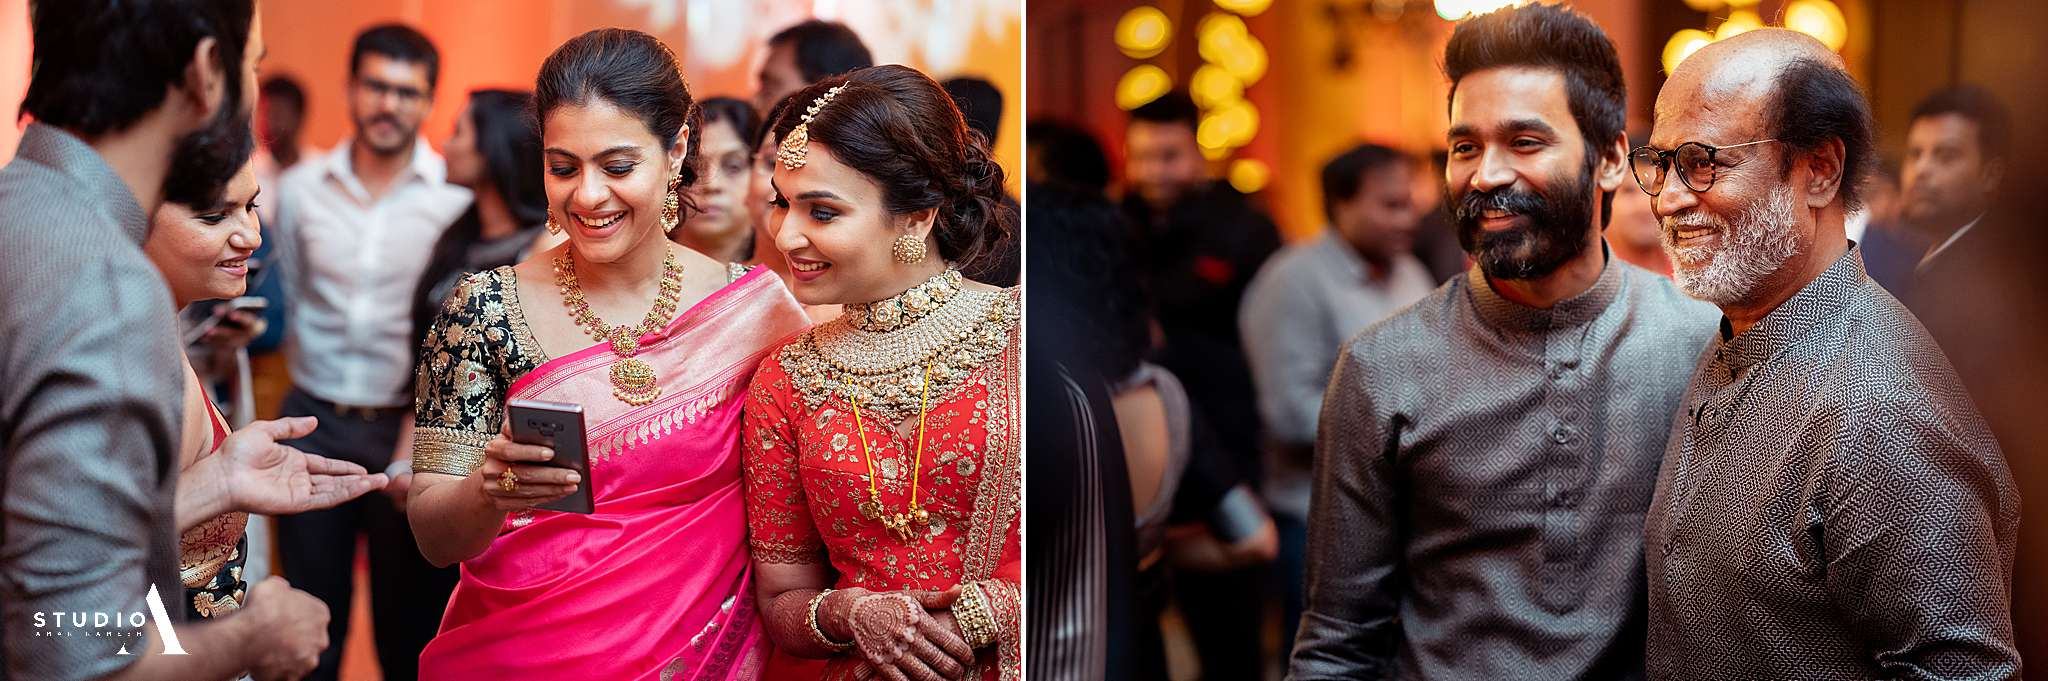 vishagan-soundarya-Rajinikanth-superstar-daughter-wedding-22